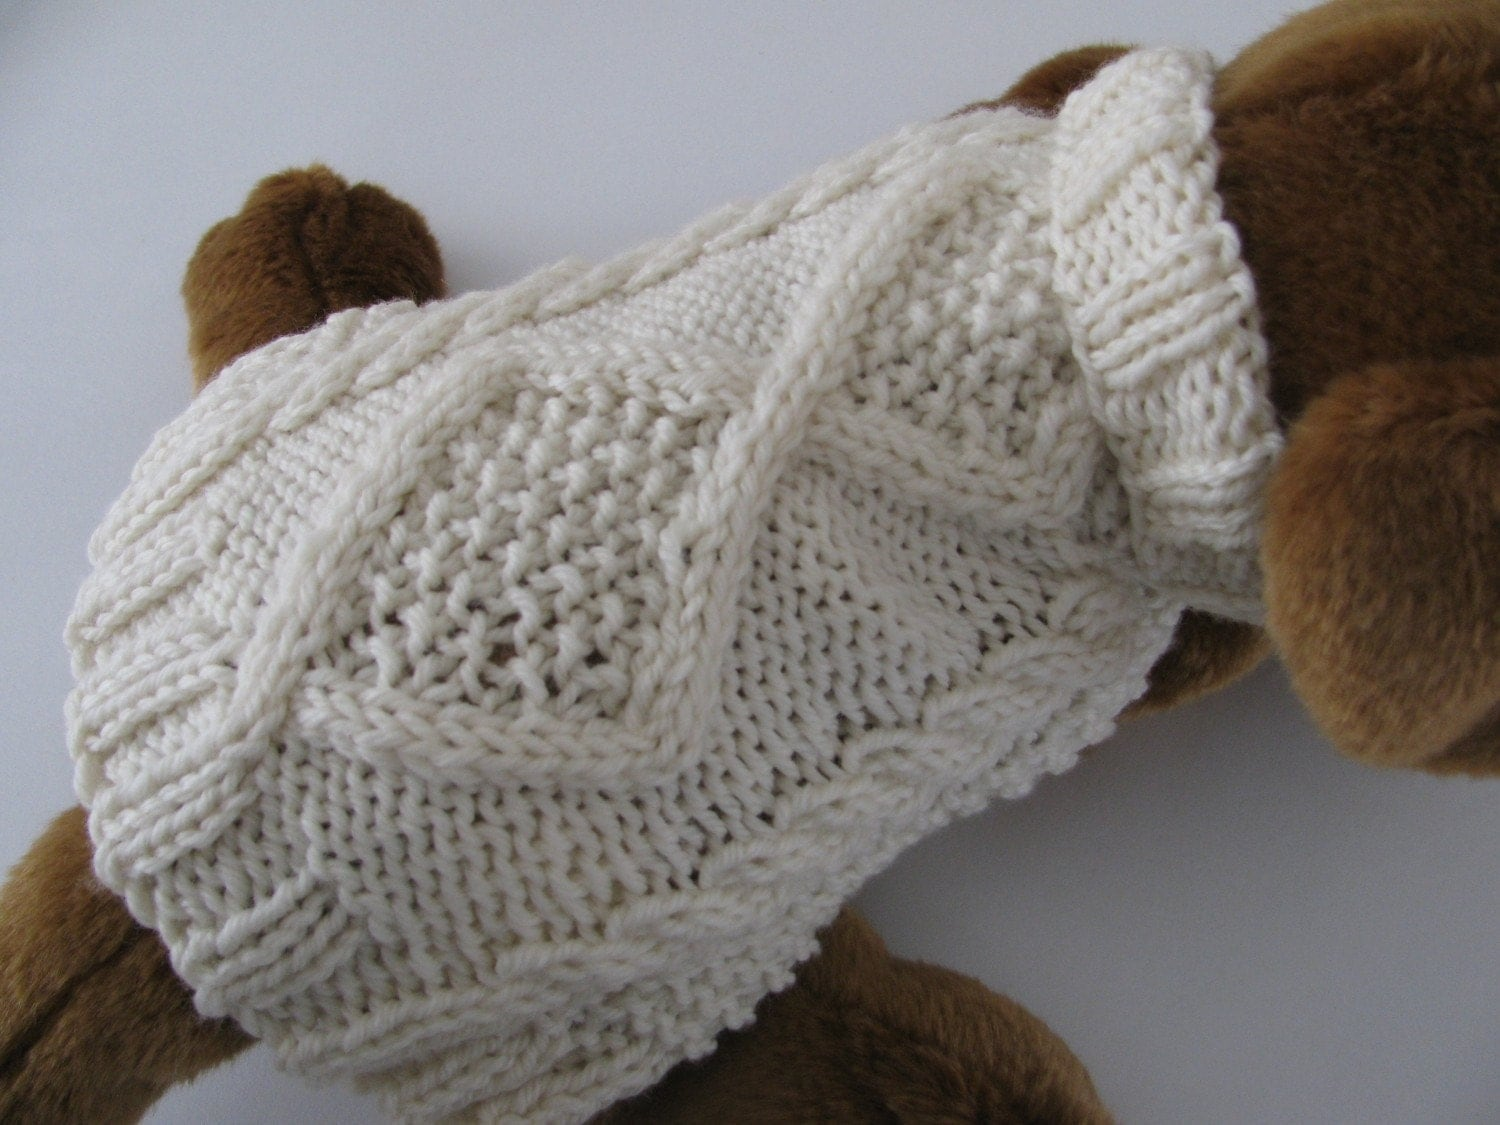 Dog sweater knitting pattern pdf aran diamond back design - Knitting for dogs sweaters ...